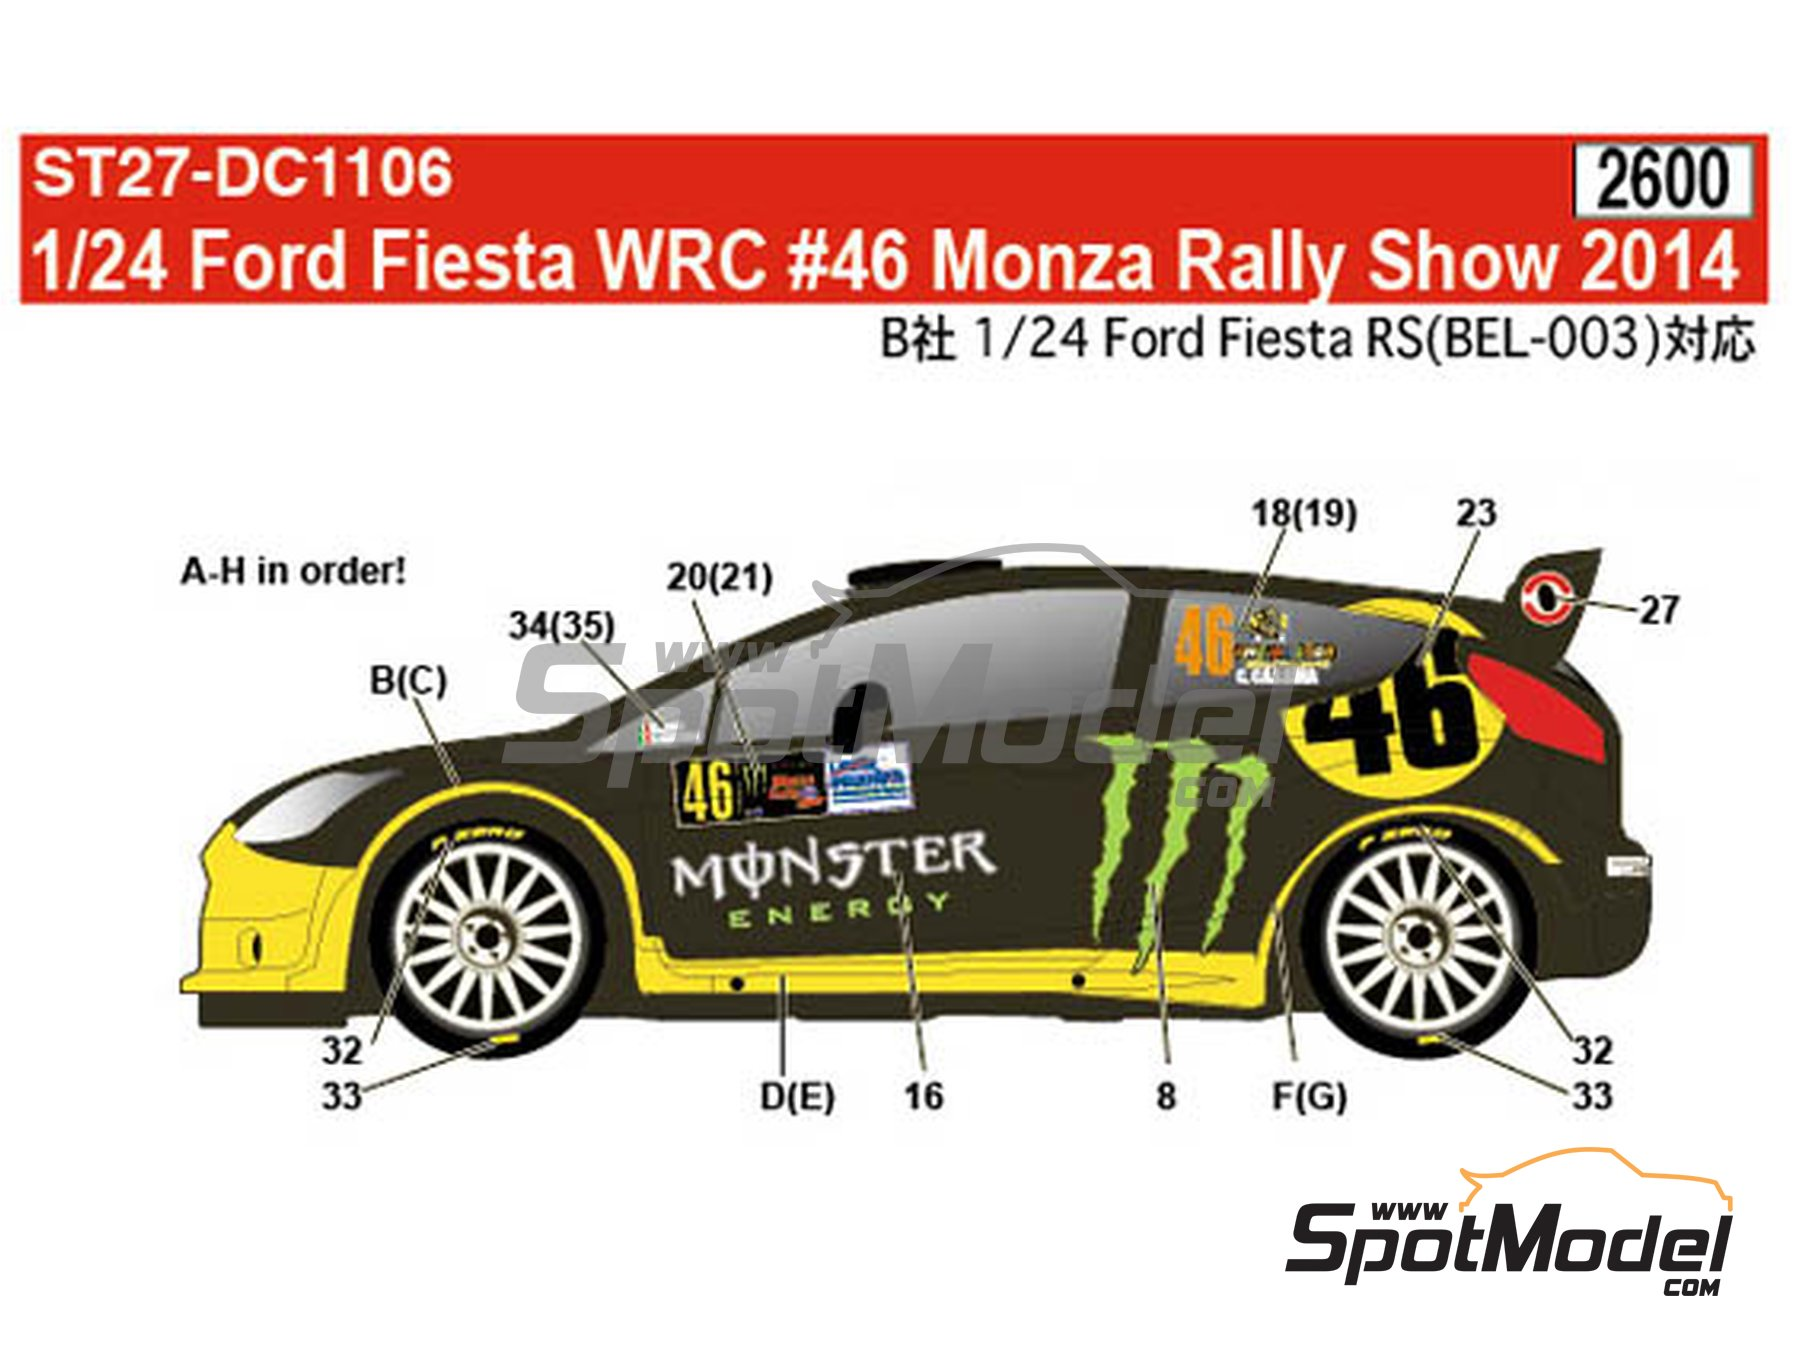 Image 1: Ford Fiesta WRC Monster Energy - Monza Rally Show 2014 | Marking / livery in 1/24 scale manufactured by Studio27 (ref.ST27-DC1106)